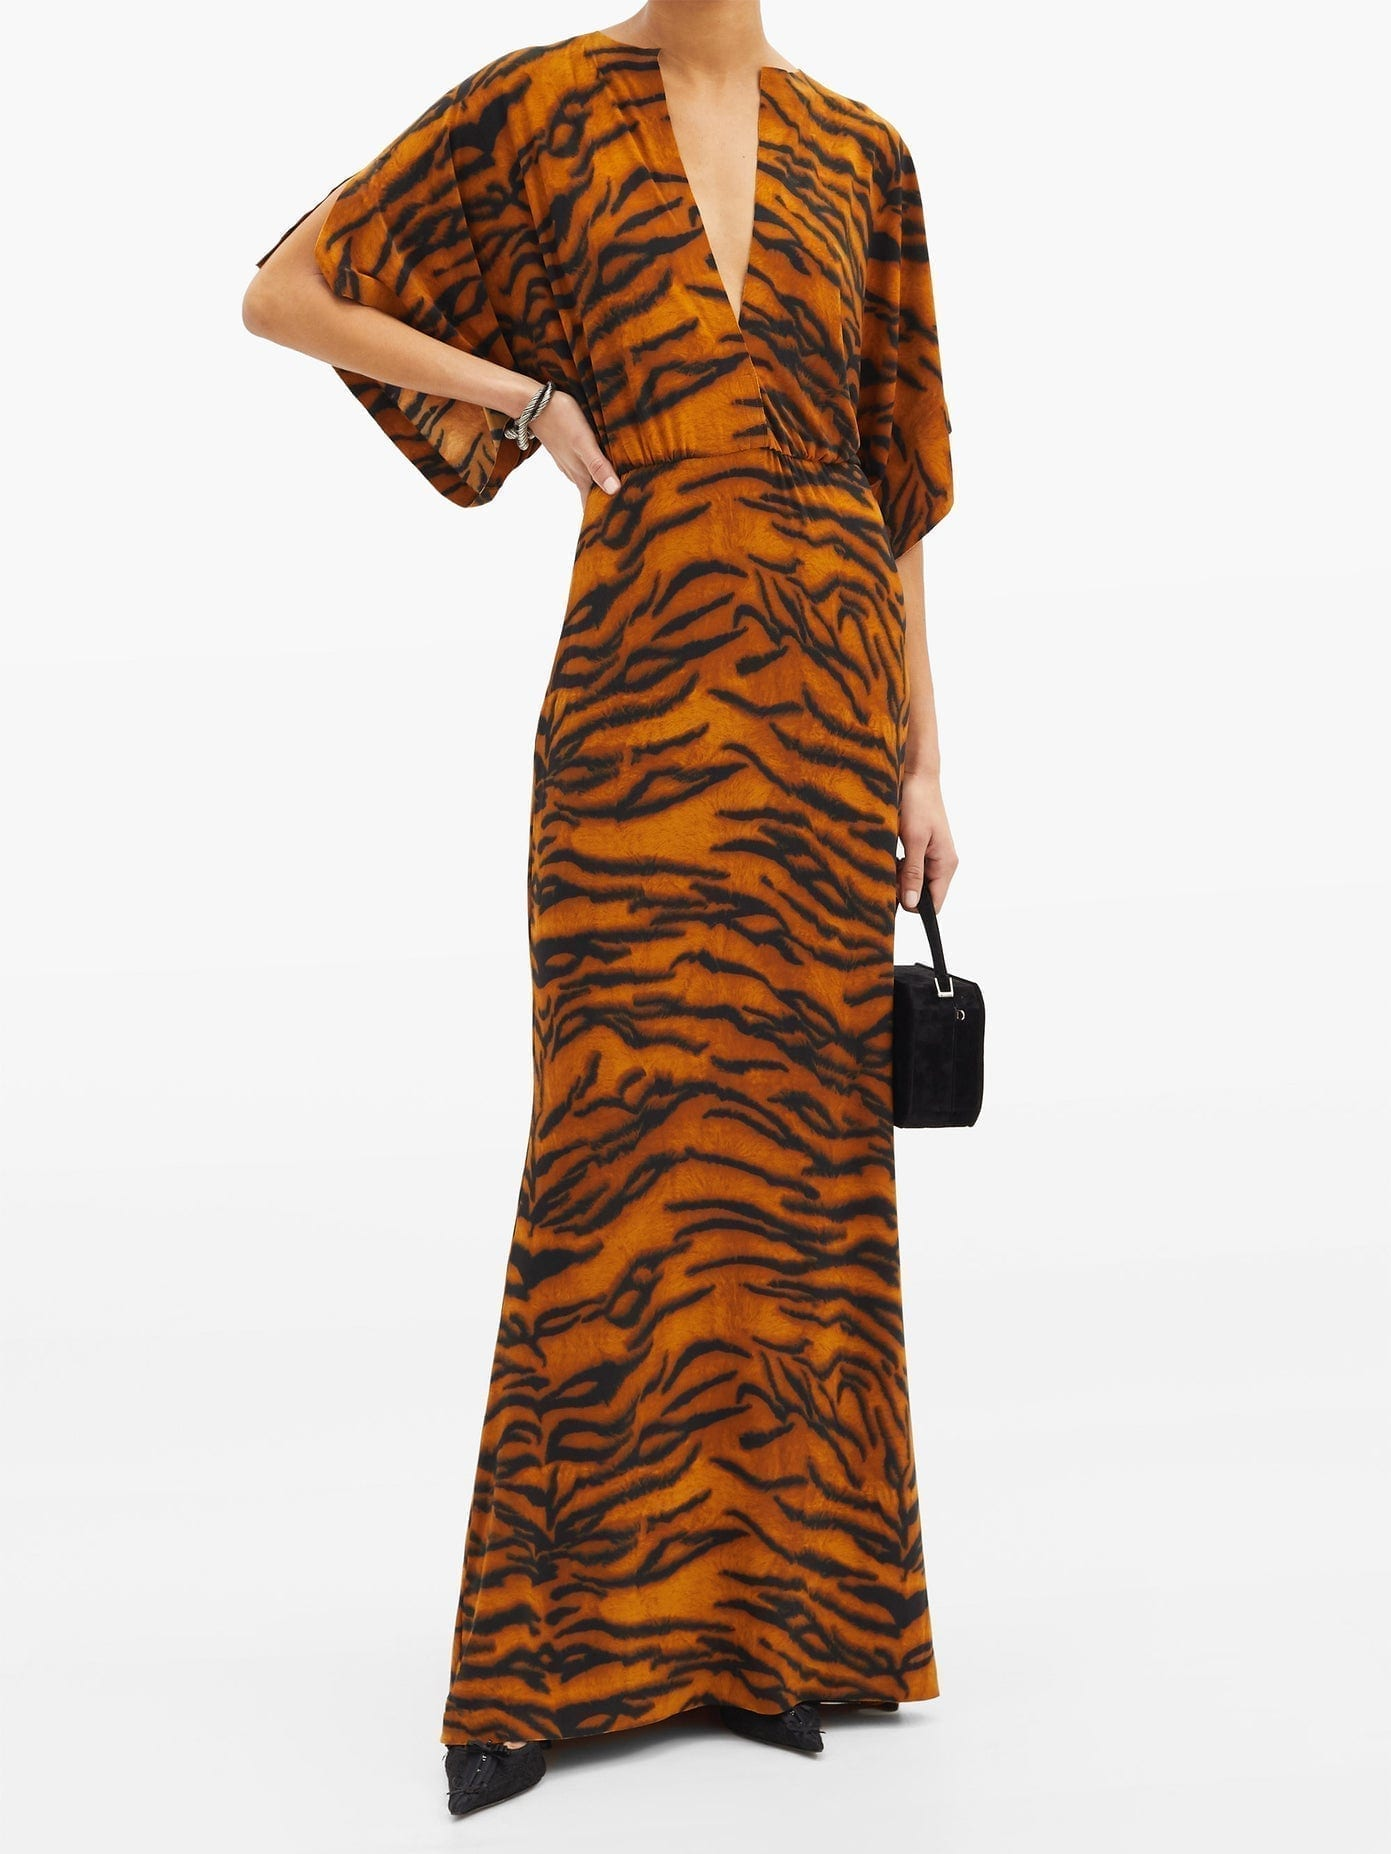 NORMA KAMALI Obie V-neck Tiger-print Jersey Dress